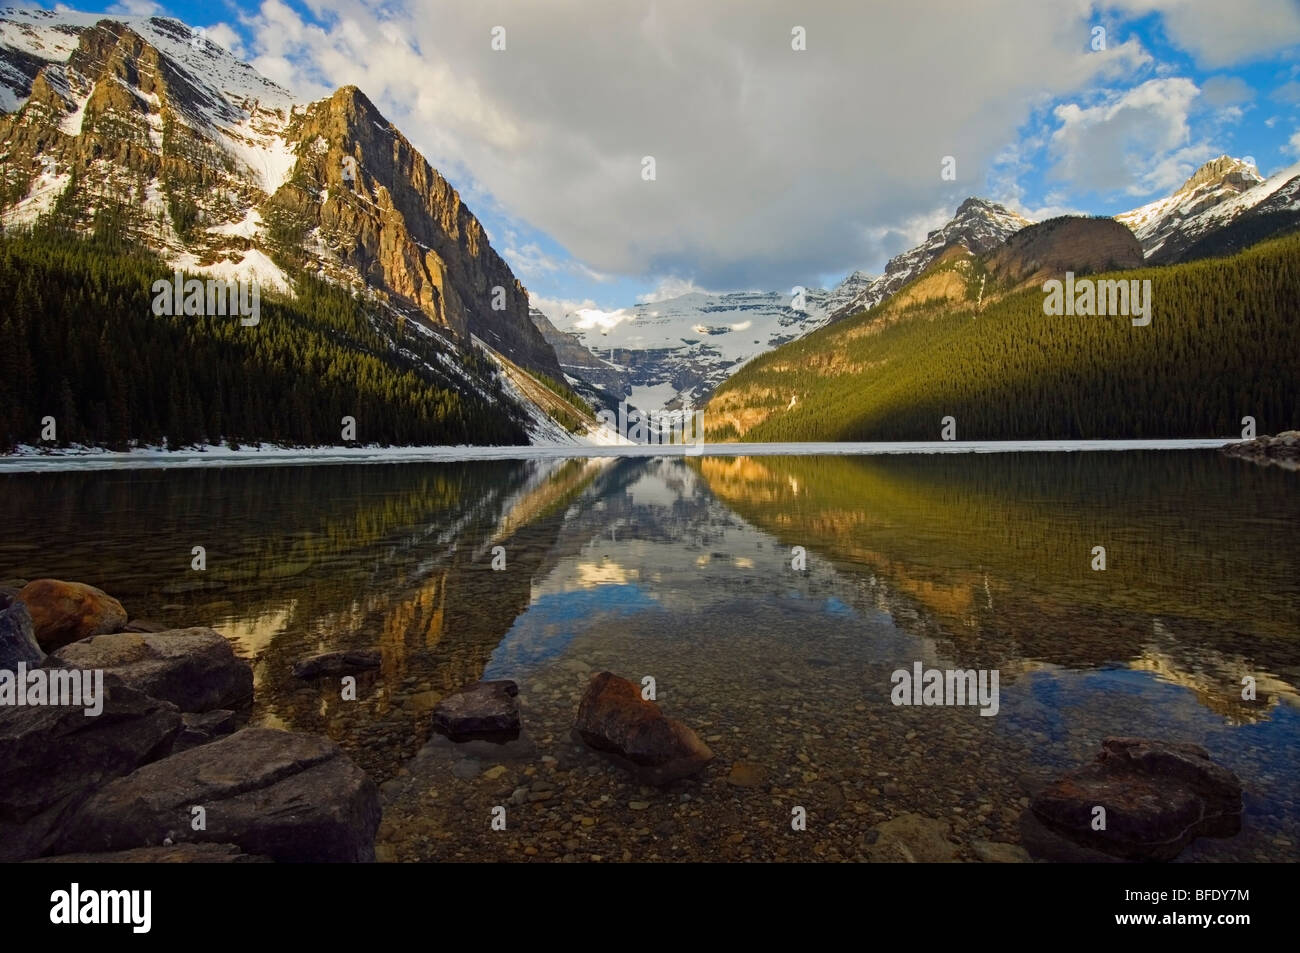 Water reflections in Lake Louise, Banff National Park, Alberta, Canada - Stock Image